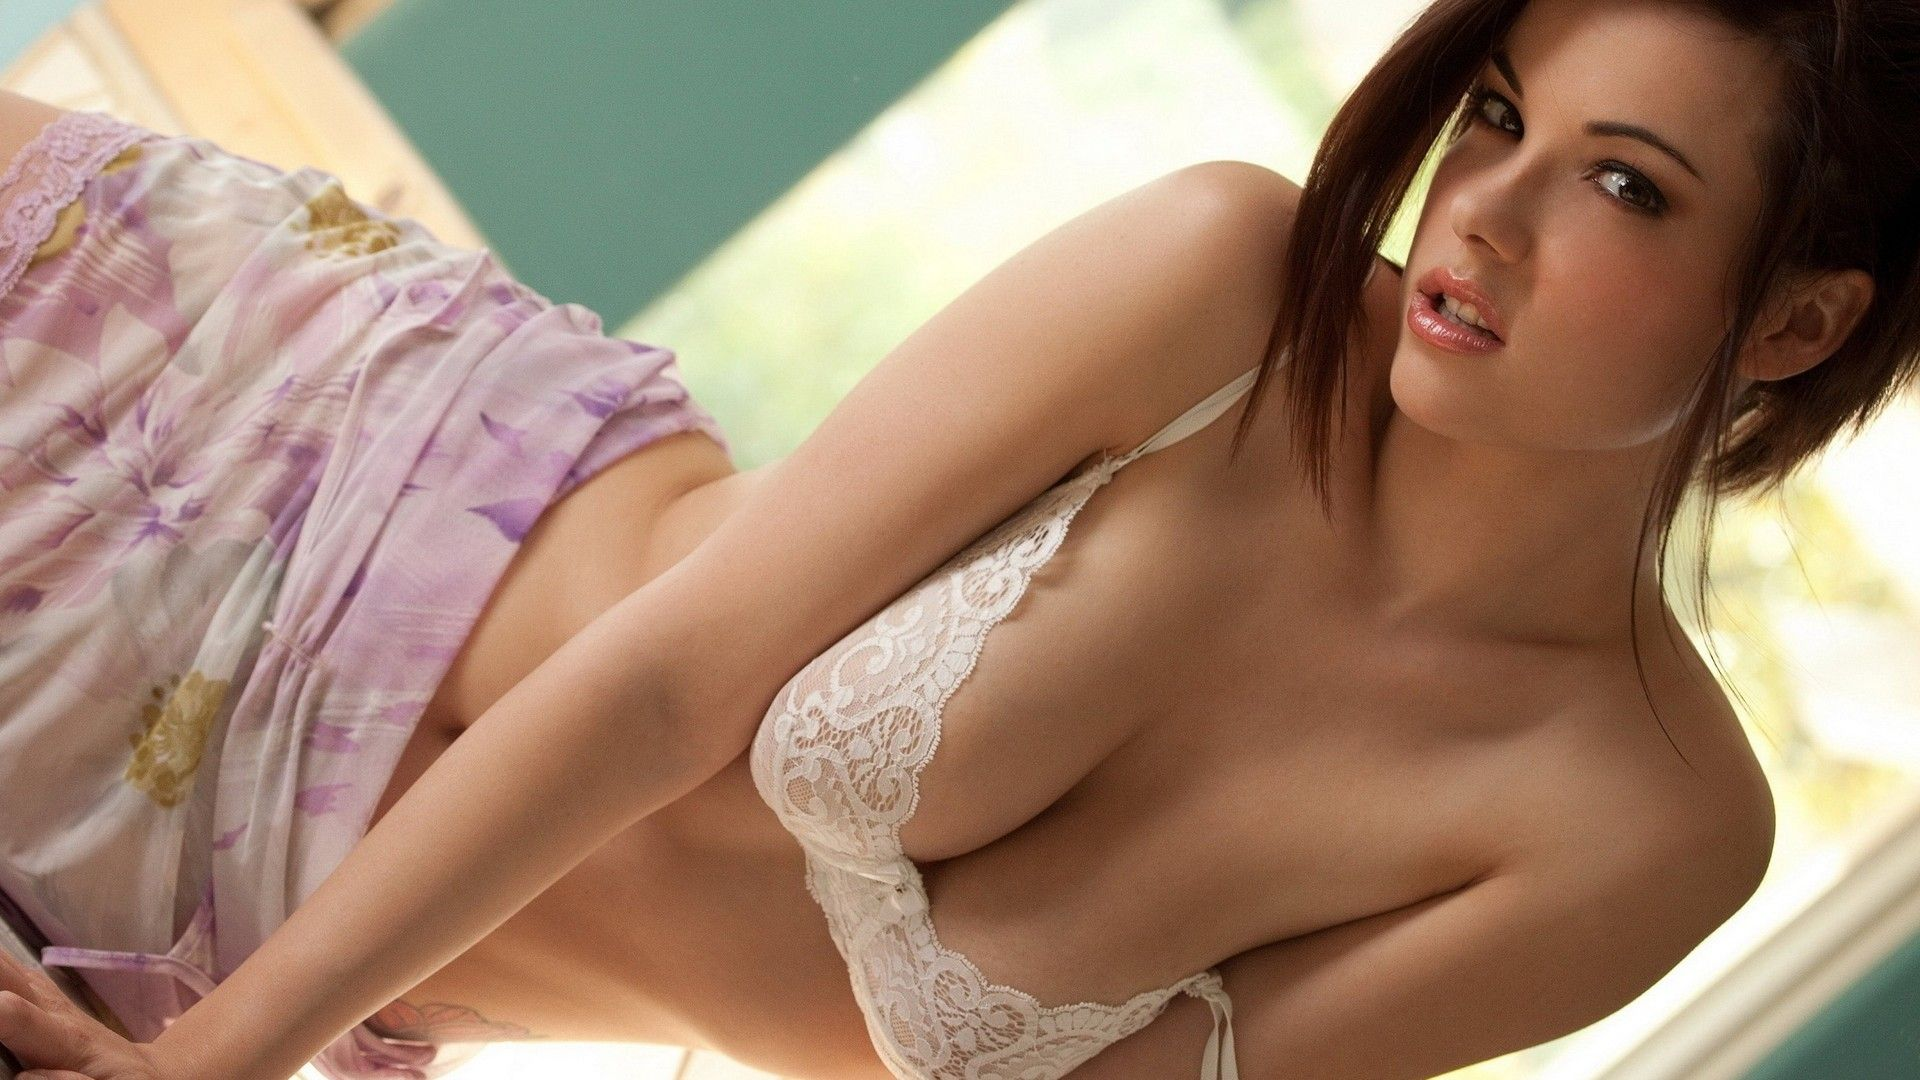 download-sexy-girls-htt-www-porno-chinas